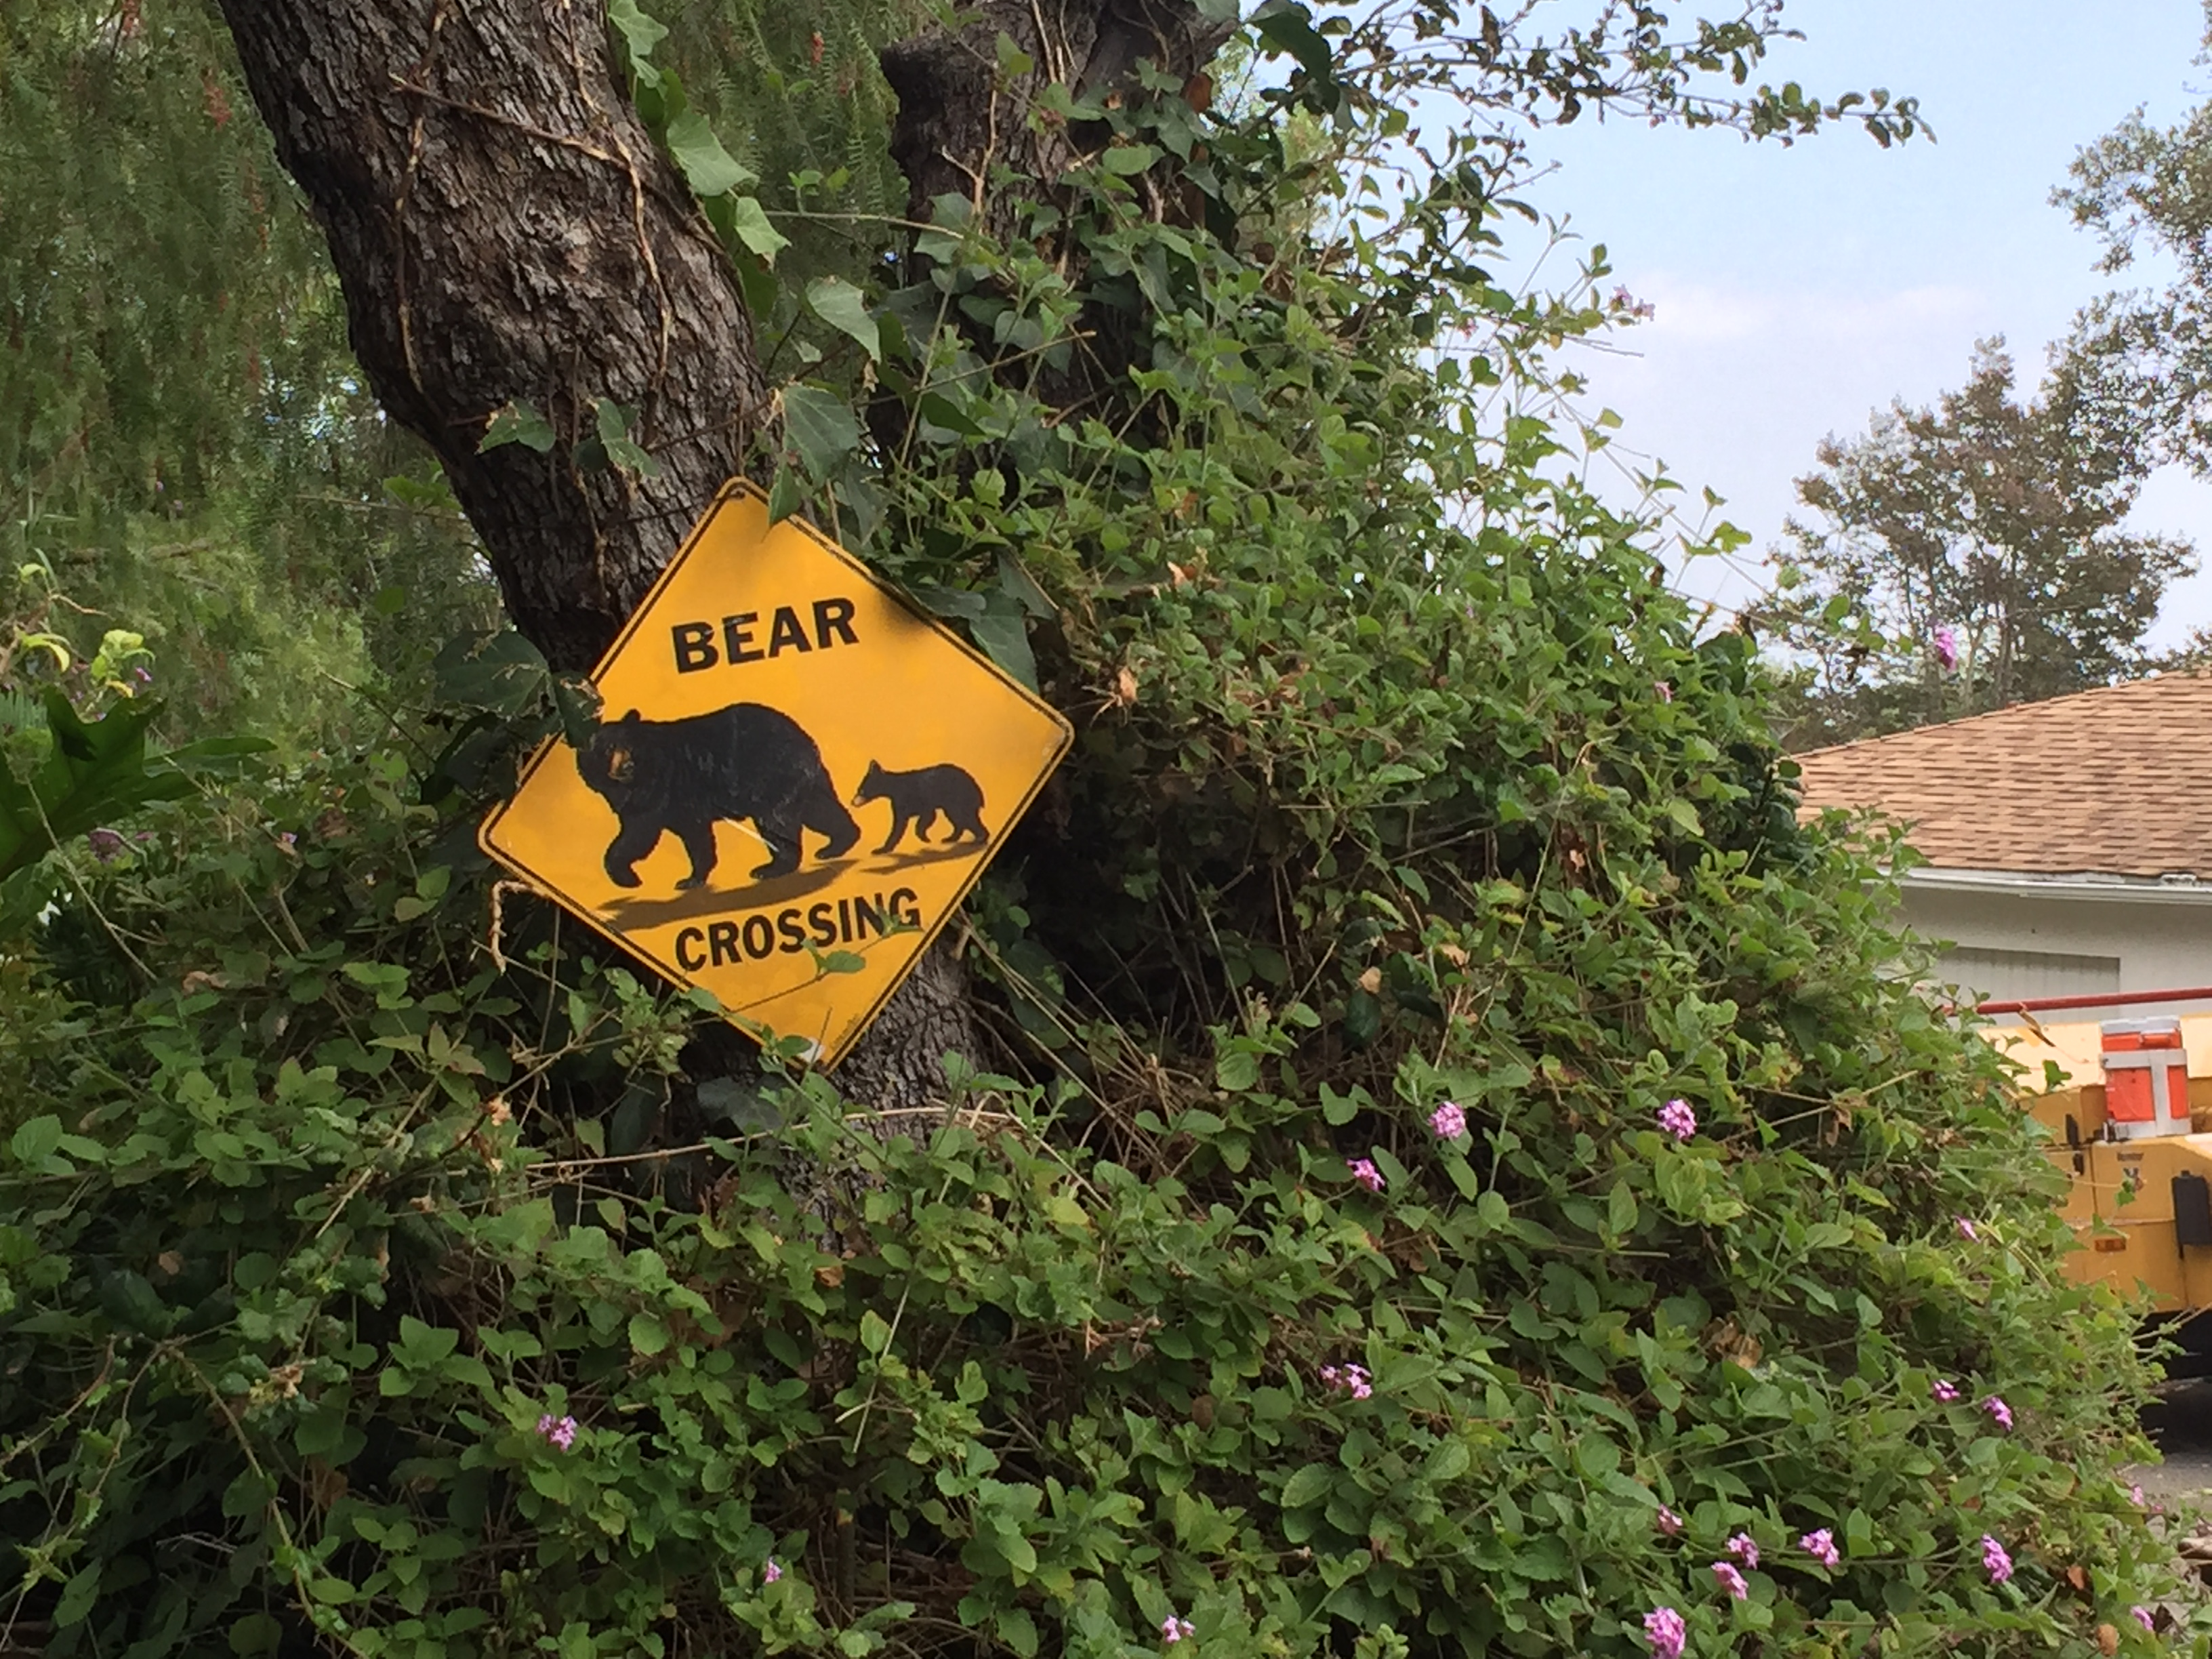 A bear crossing sign on the side of the road in Monrovia, Calif.